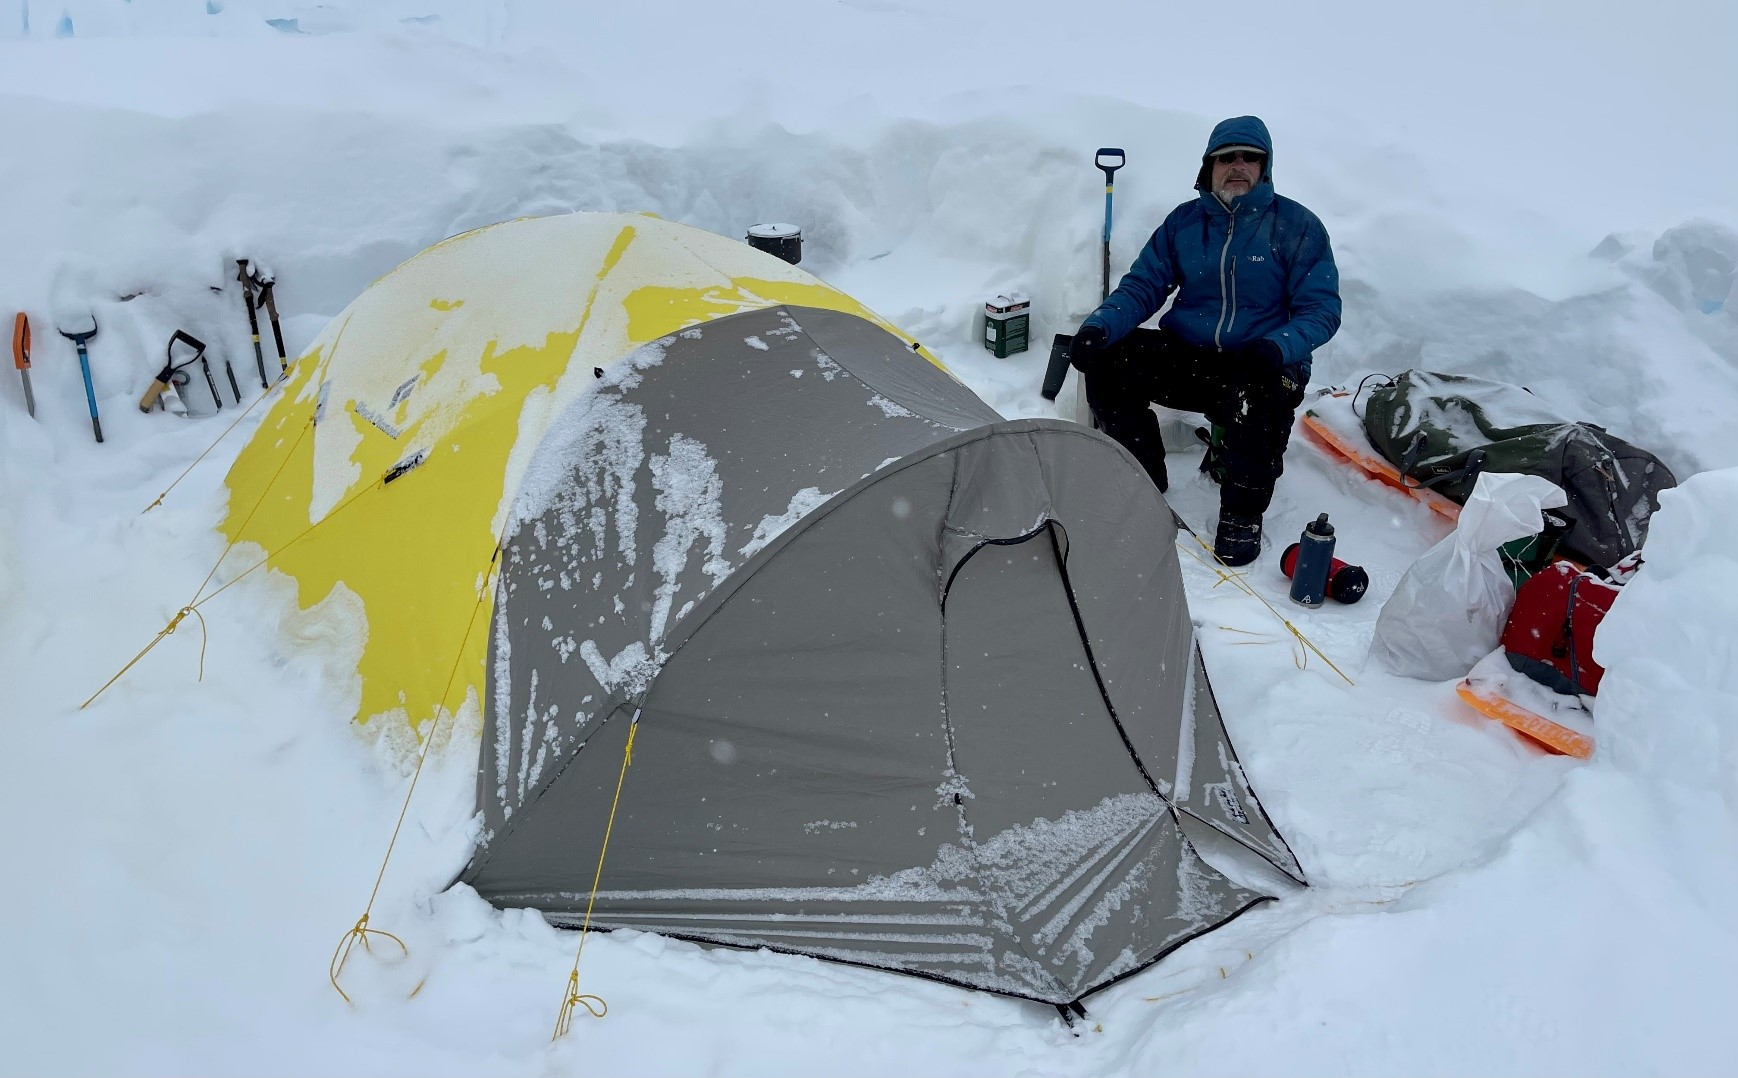 John MacDonald at a snow-covered camp, with tent and supplies, en route to the summit of Denali alt